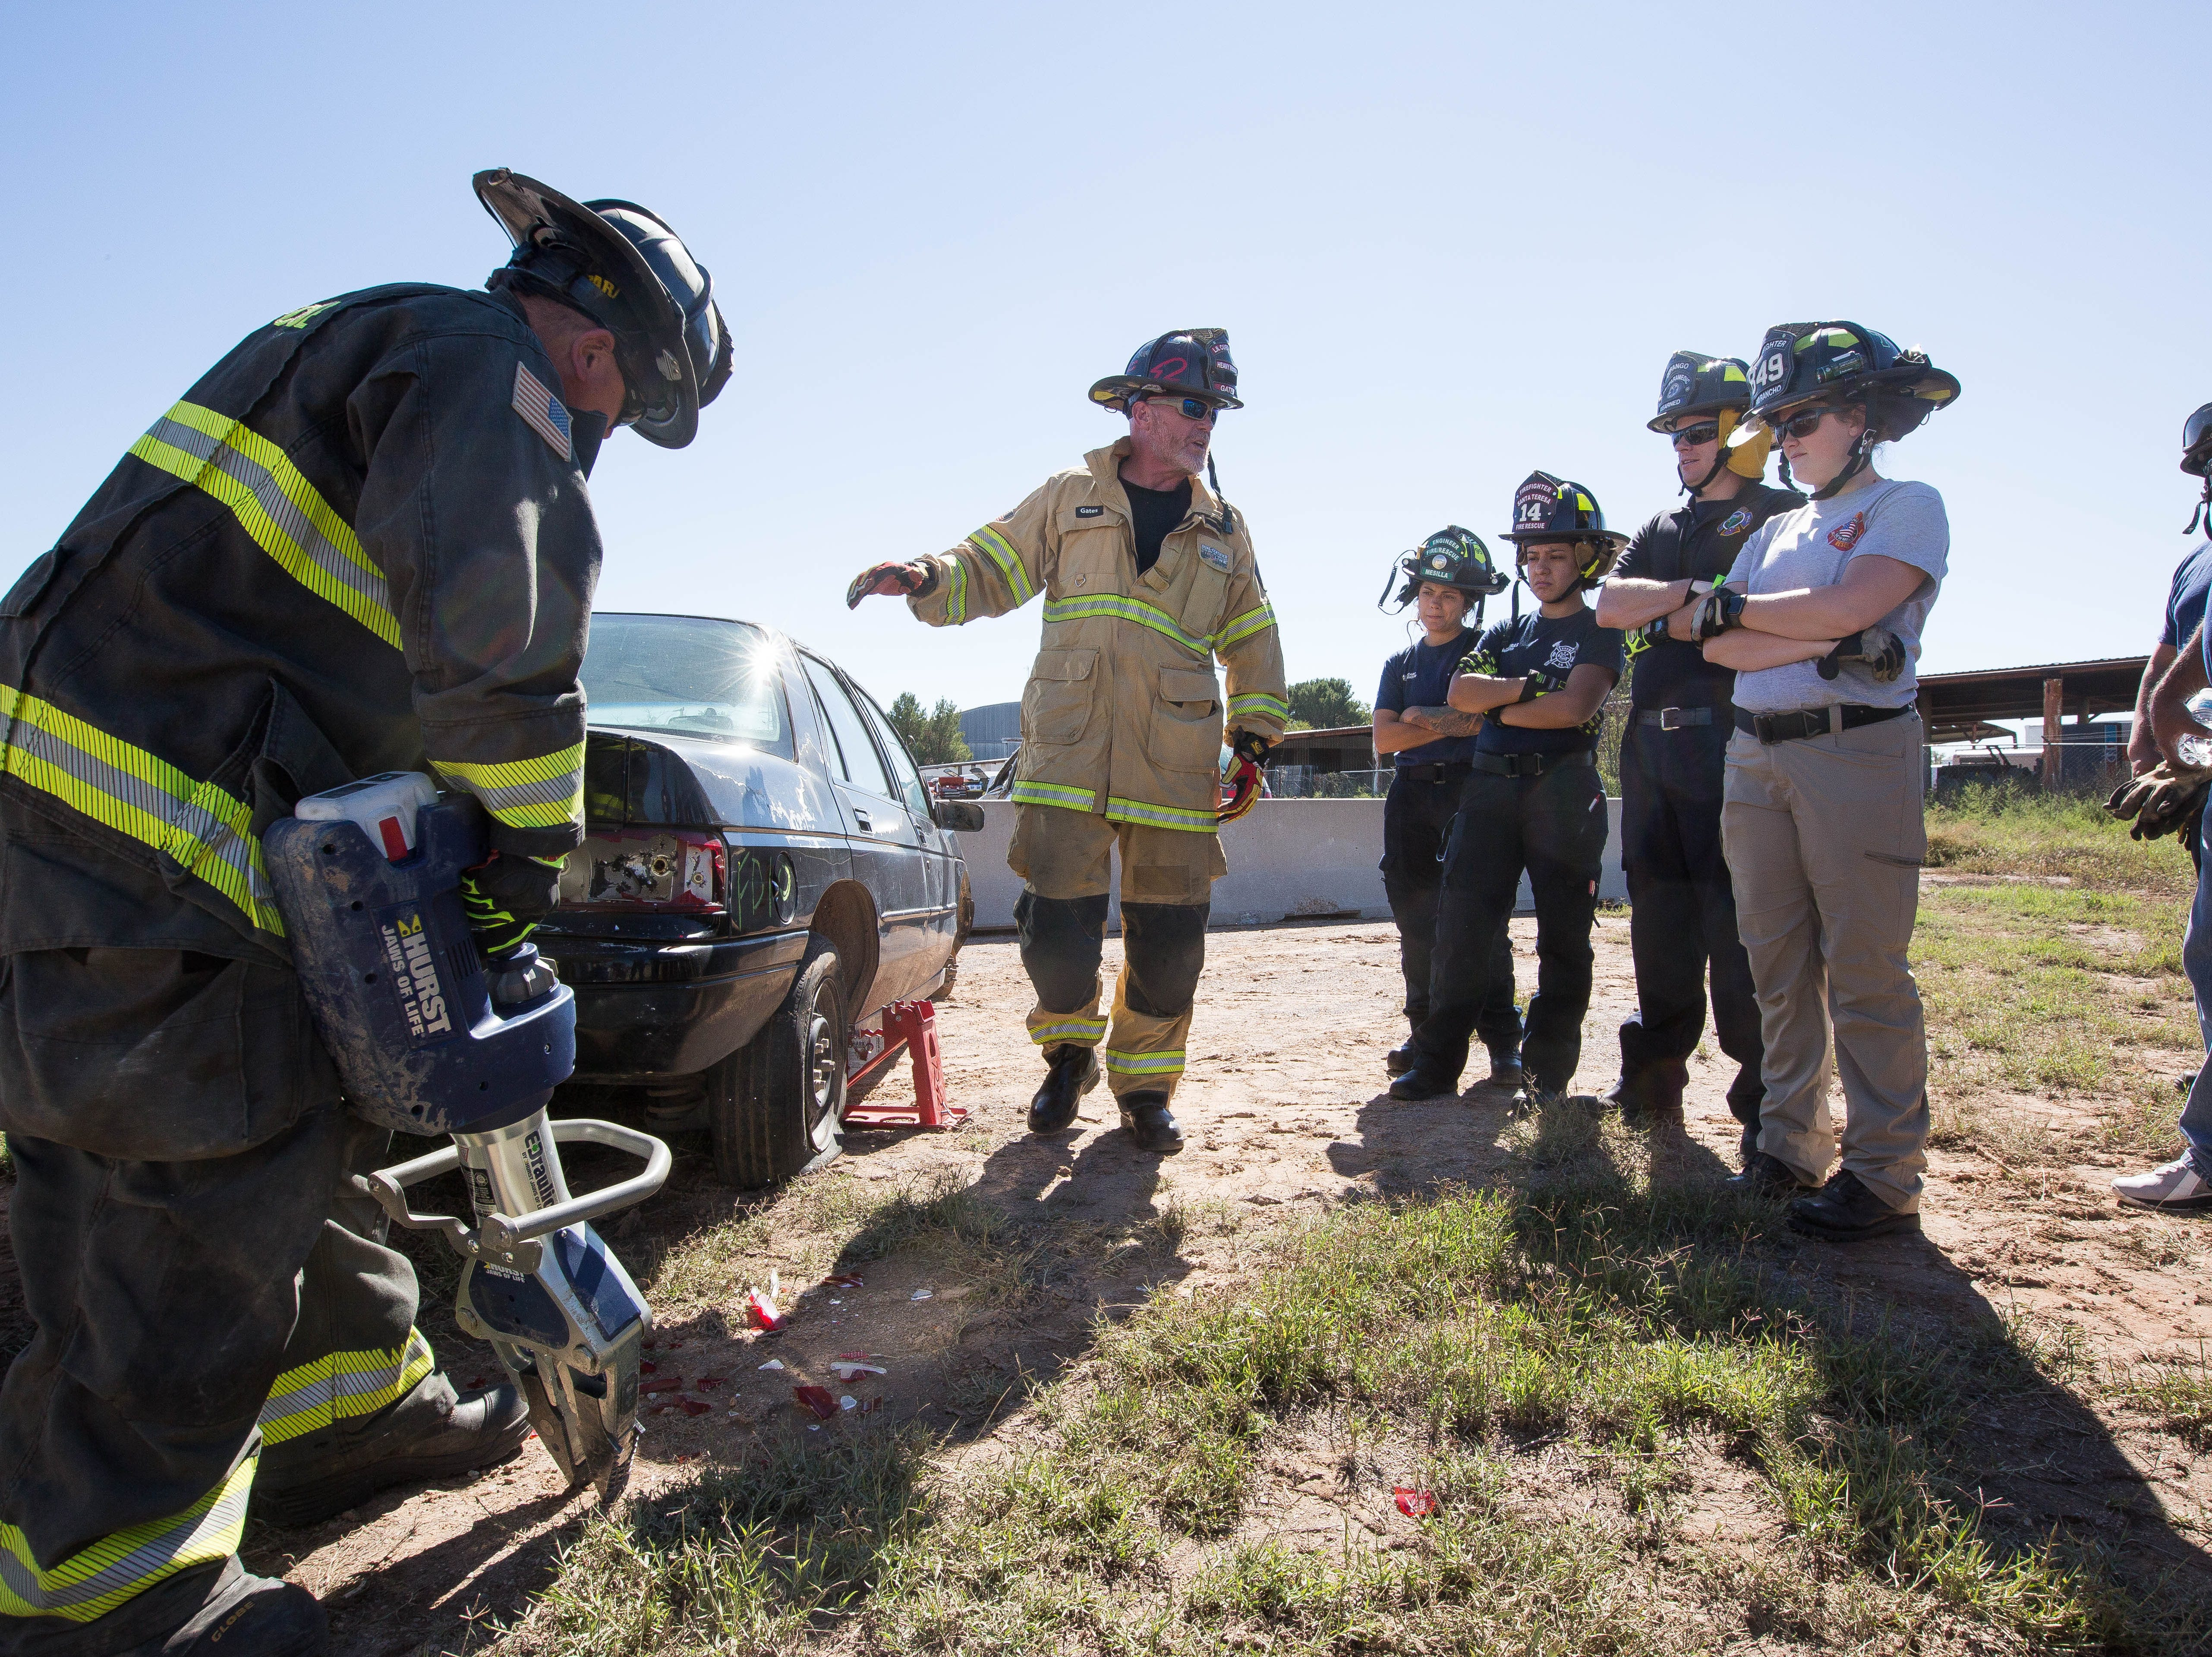 Jeff Gates, center, an instructor from Curtis Tools for Heroes, with help from Brian Bird, left,  explains where a first responder might look to open a truck using a jaws of life tool, during a Extraction tactics demonstration Friday October 26, 2018. This demonstration is part of a three-day advanced auto extraction class, providing first responders with training different types of vehicles and accidents they will encounter while on the job.